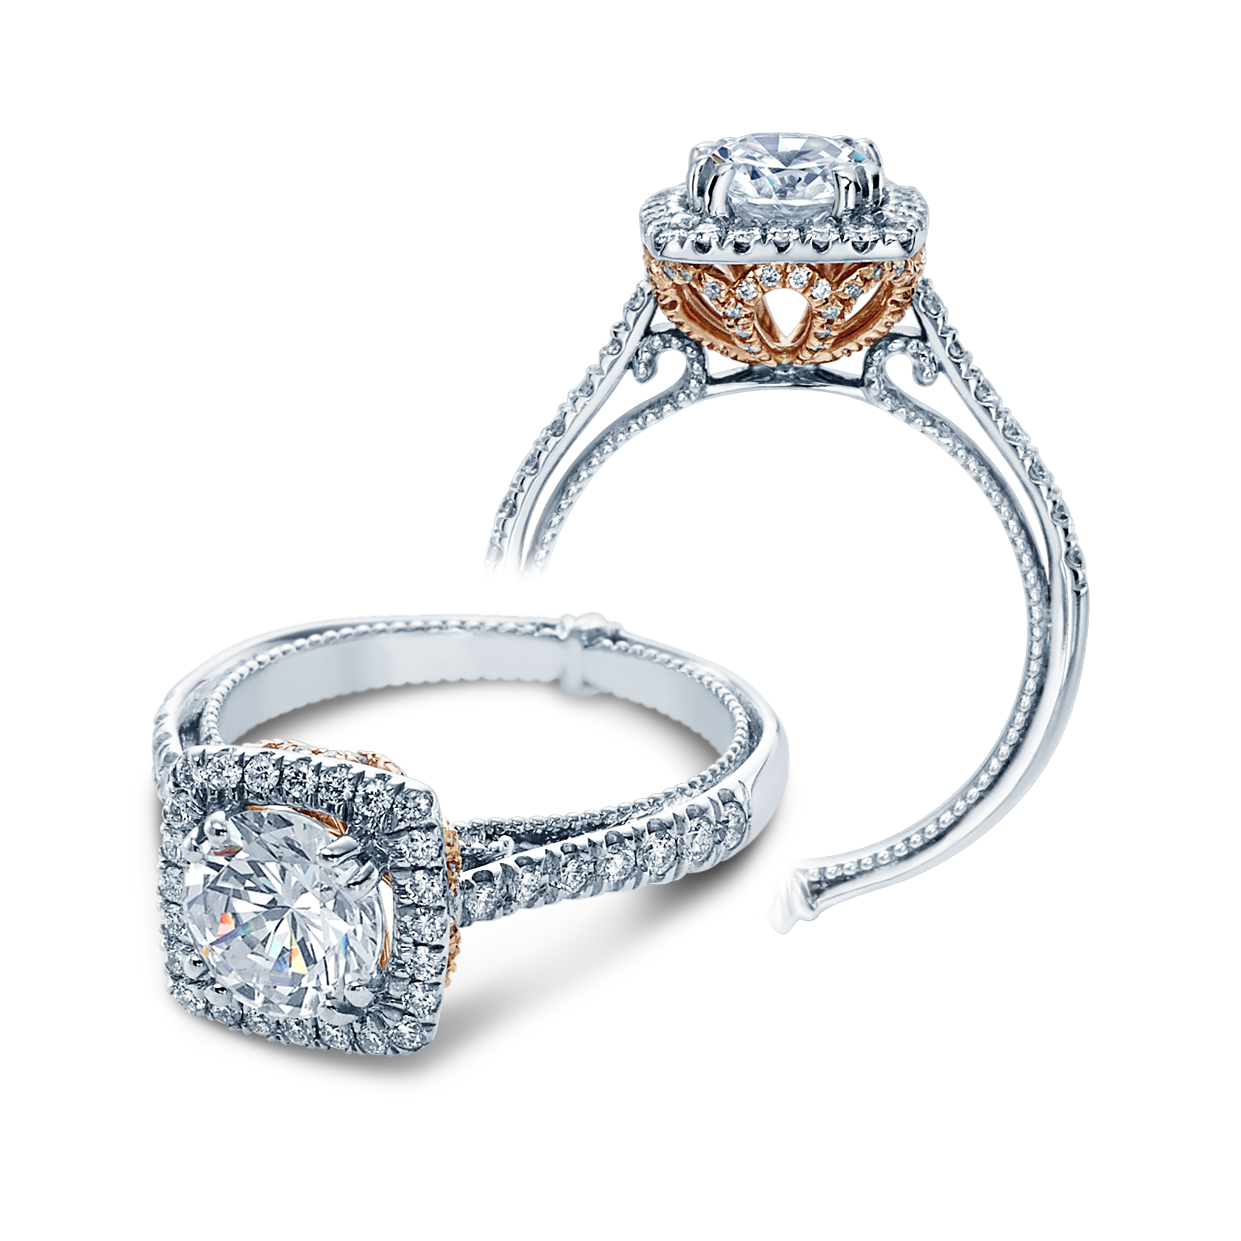 Verragio Couture 0433CU-TT Engagement Ring